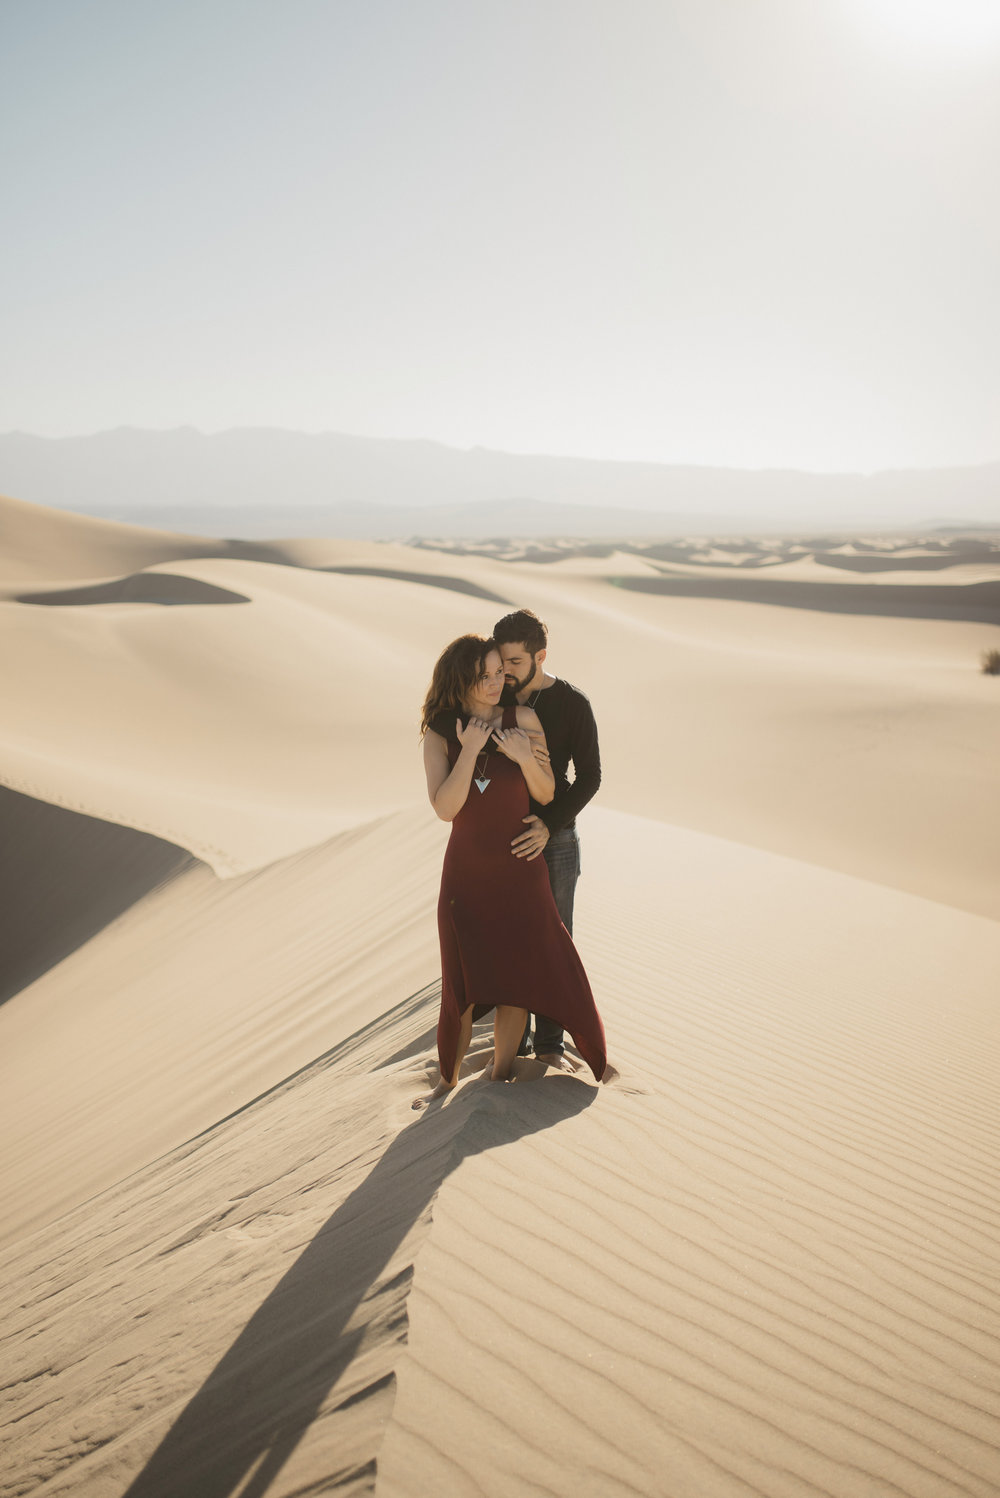 Death Valley California Desert Adventure Engagement Photographer205.jpg